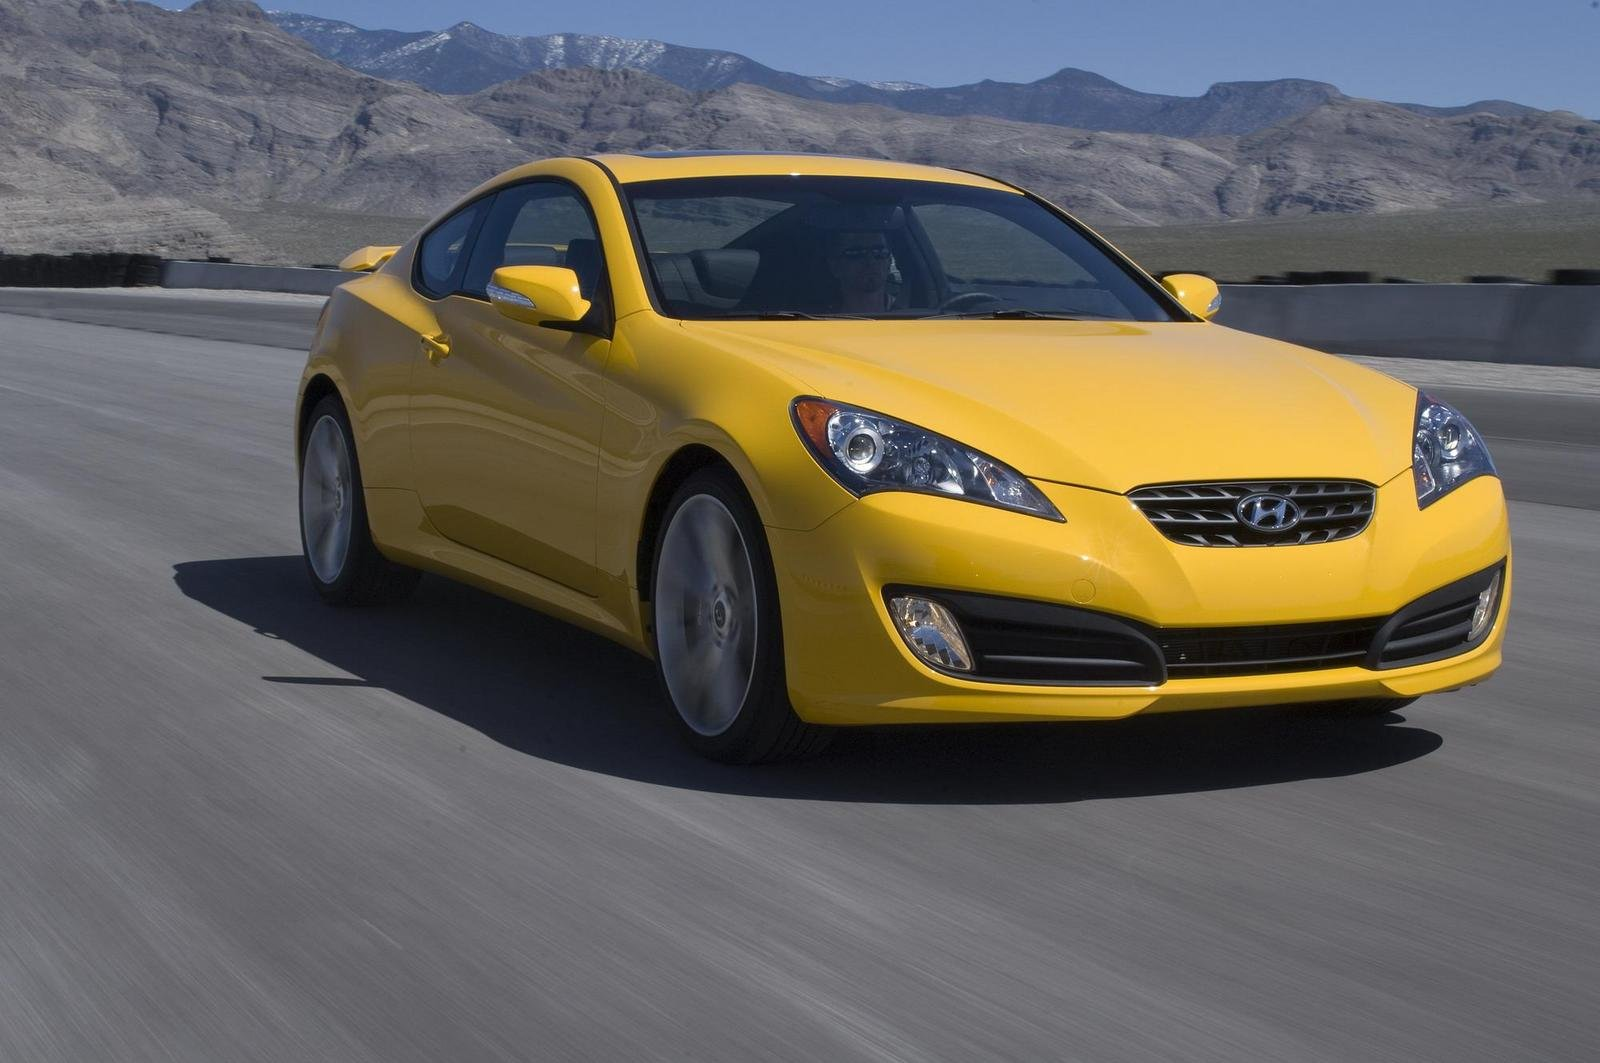 2010 hyundai genesis coupe picture 329202 car review top speed. Black Bedroom Furniture Sets. Home Design Ideas